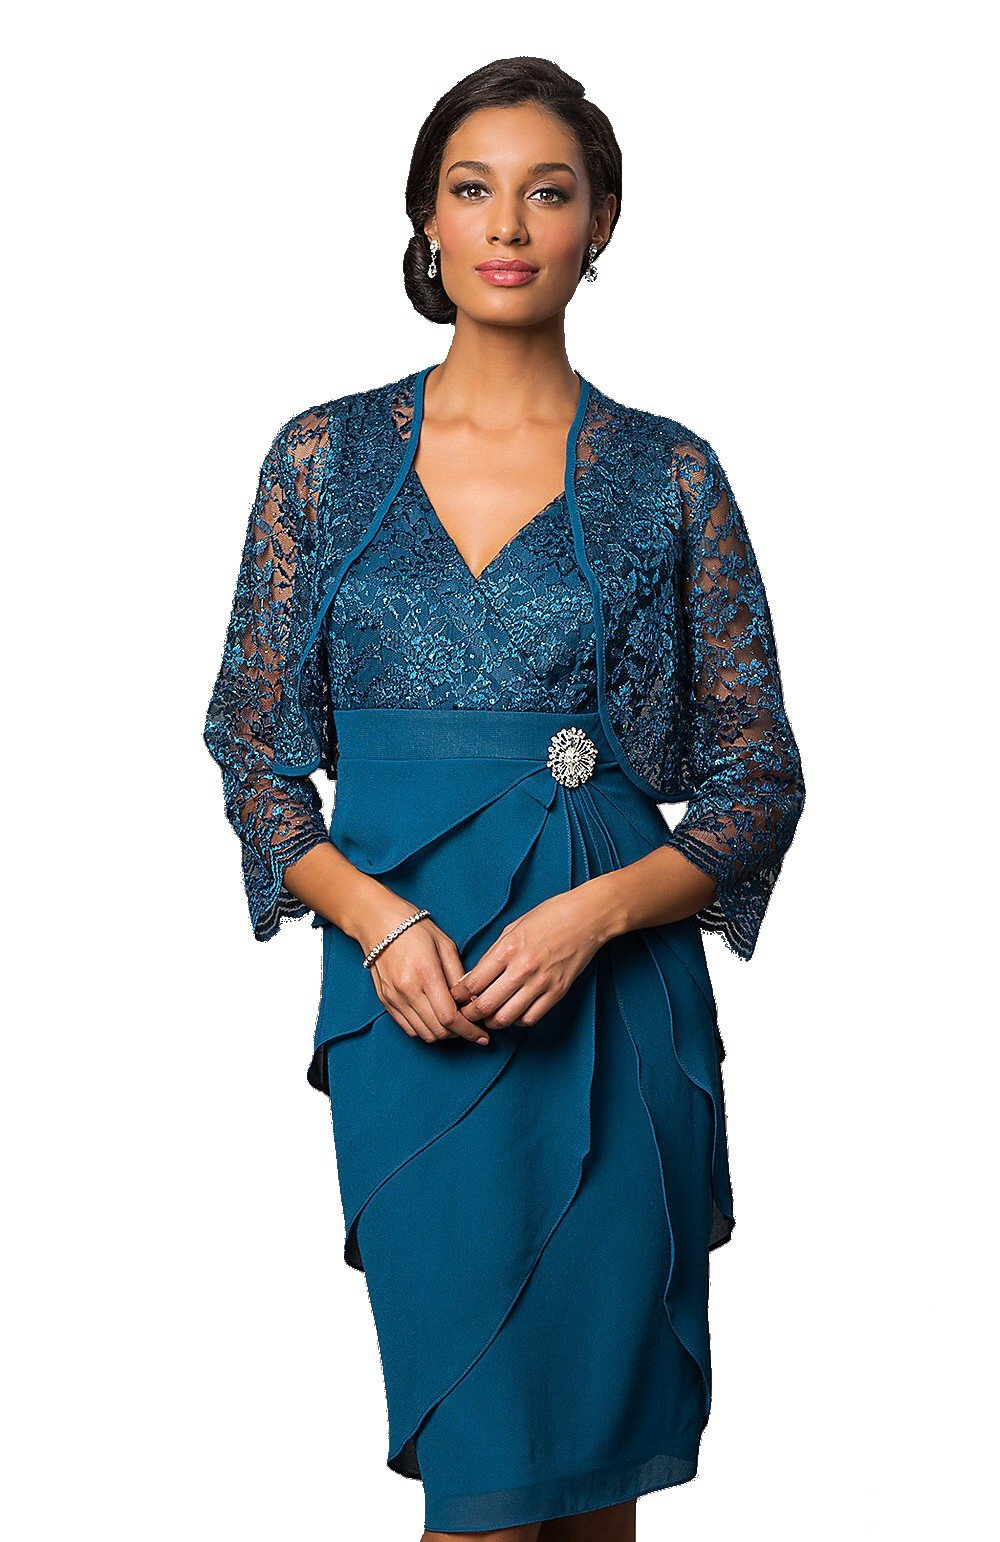 599a104ade6 Love My Seamless Womens V-Neck Glitter Lace Formal Evening Mother Of The  Bride Crepe Dress With Jacket (XL